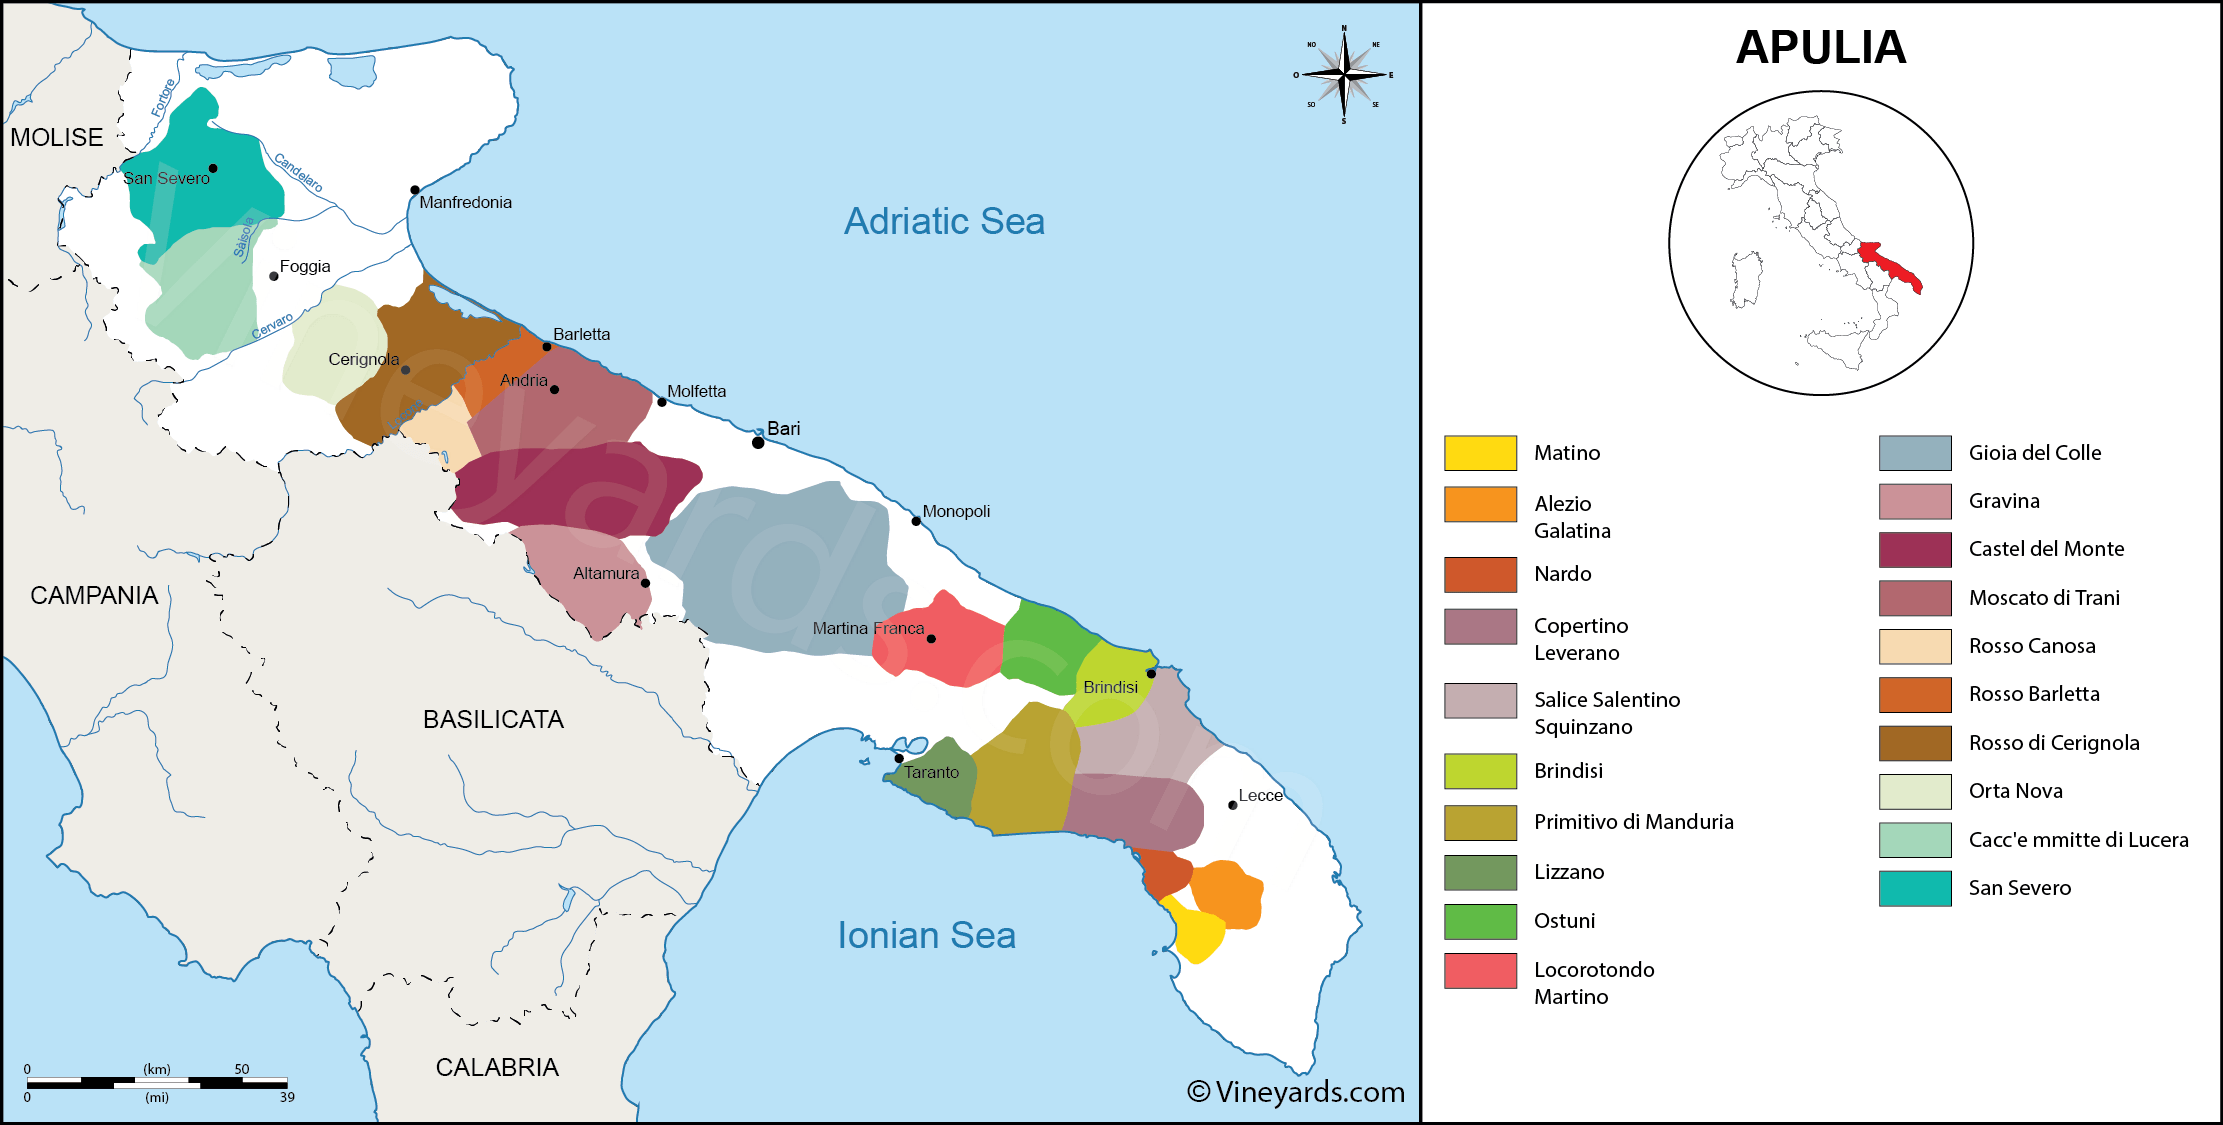 Wine Regions in Apulia